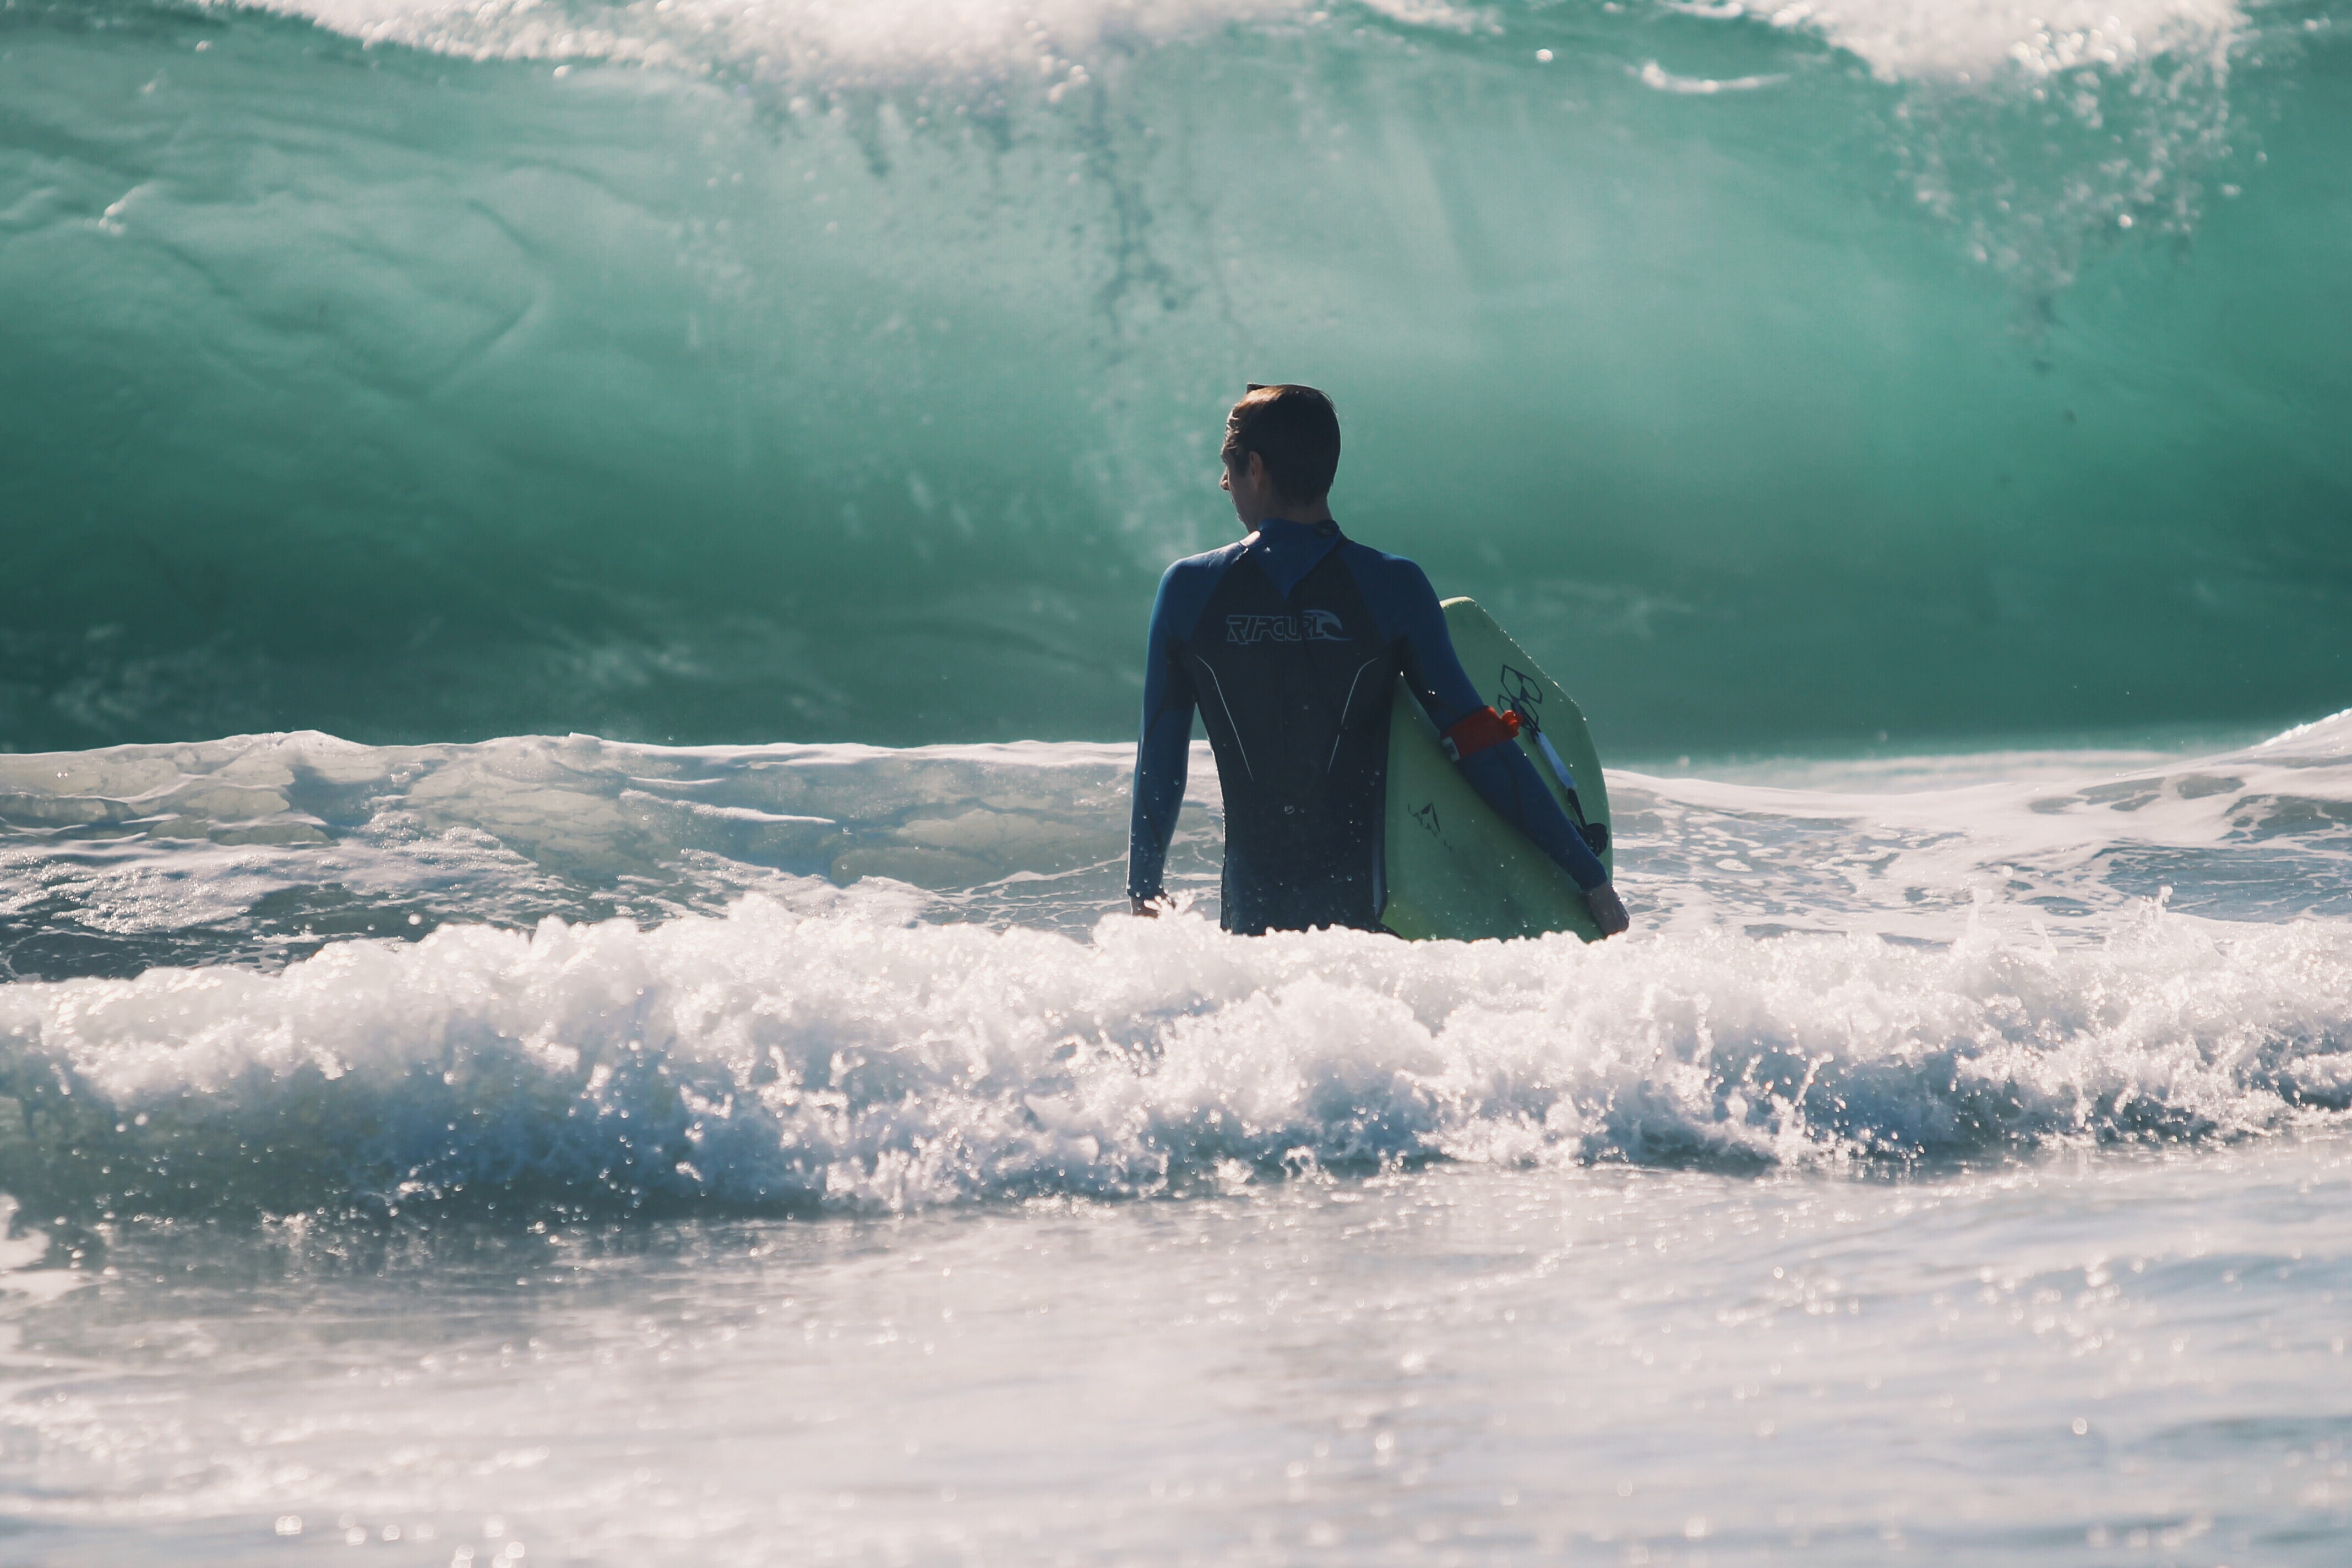 A man in a wetsuit stood in the sea, holding his board, looking out at a massive onrushing wave